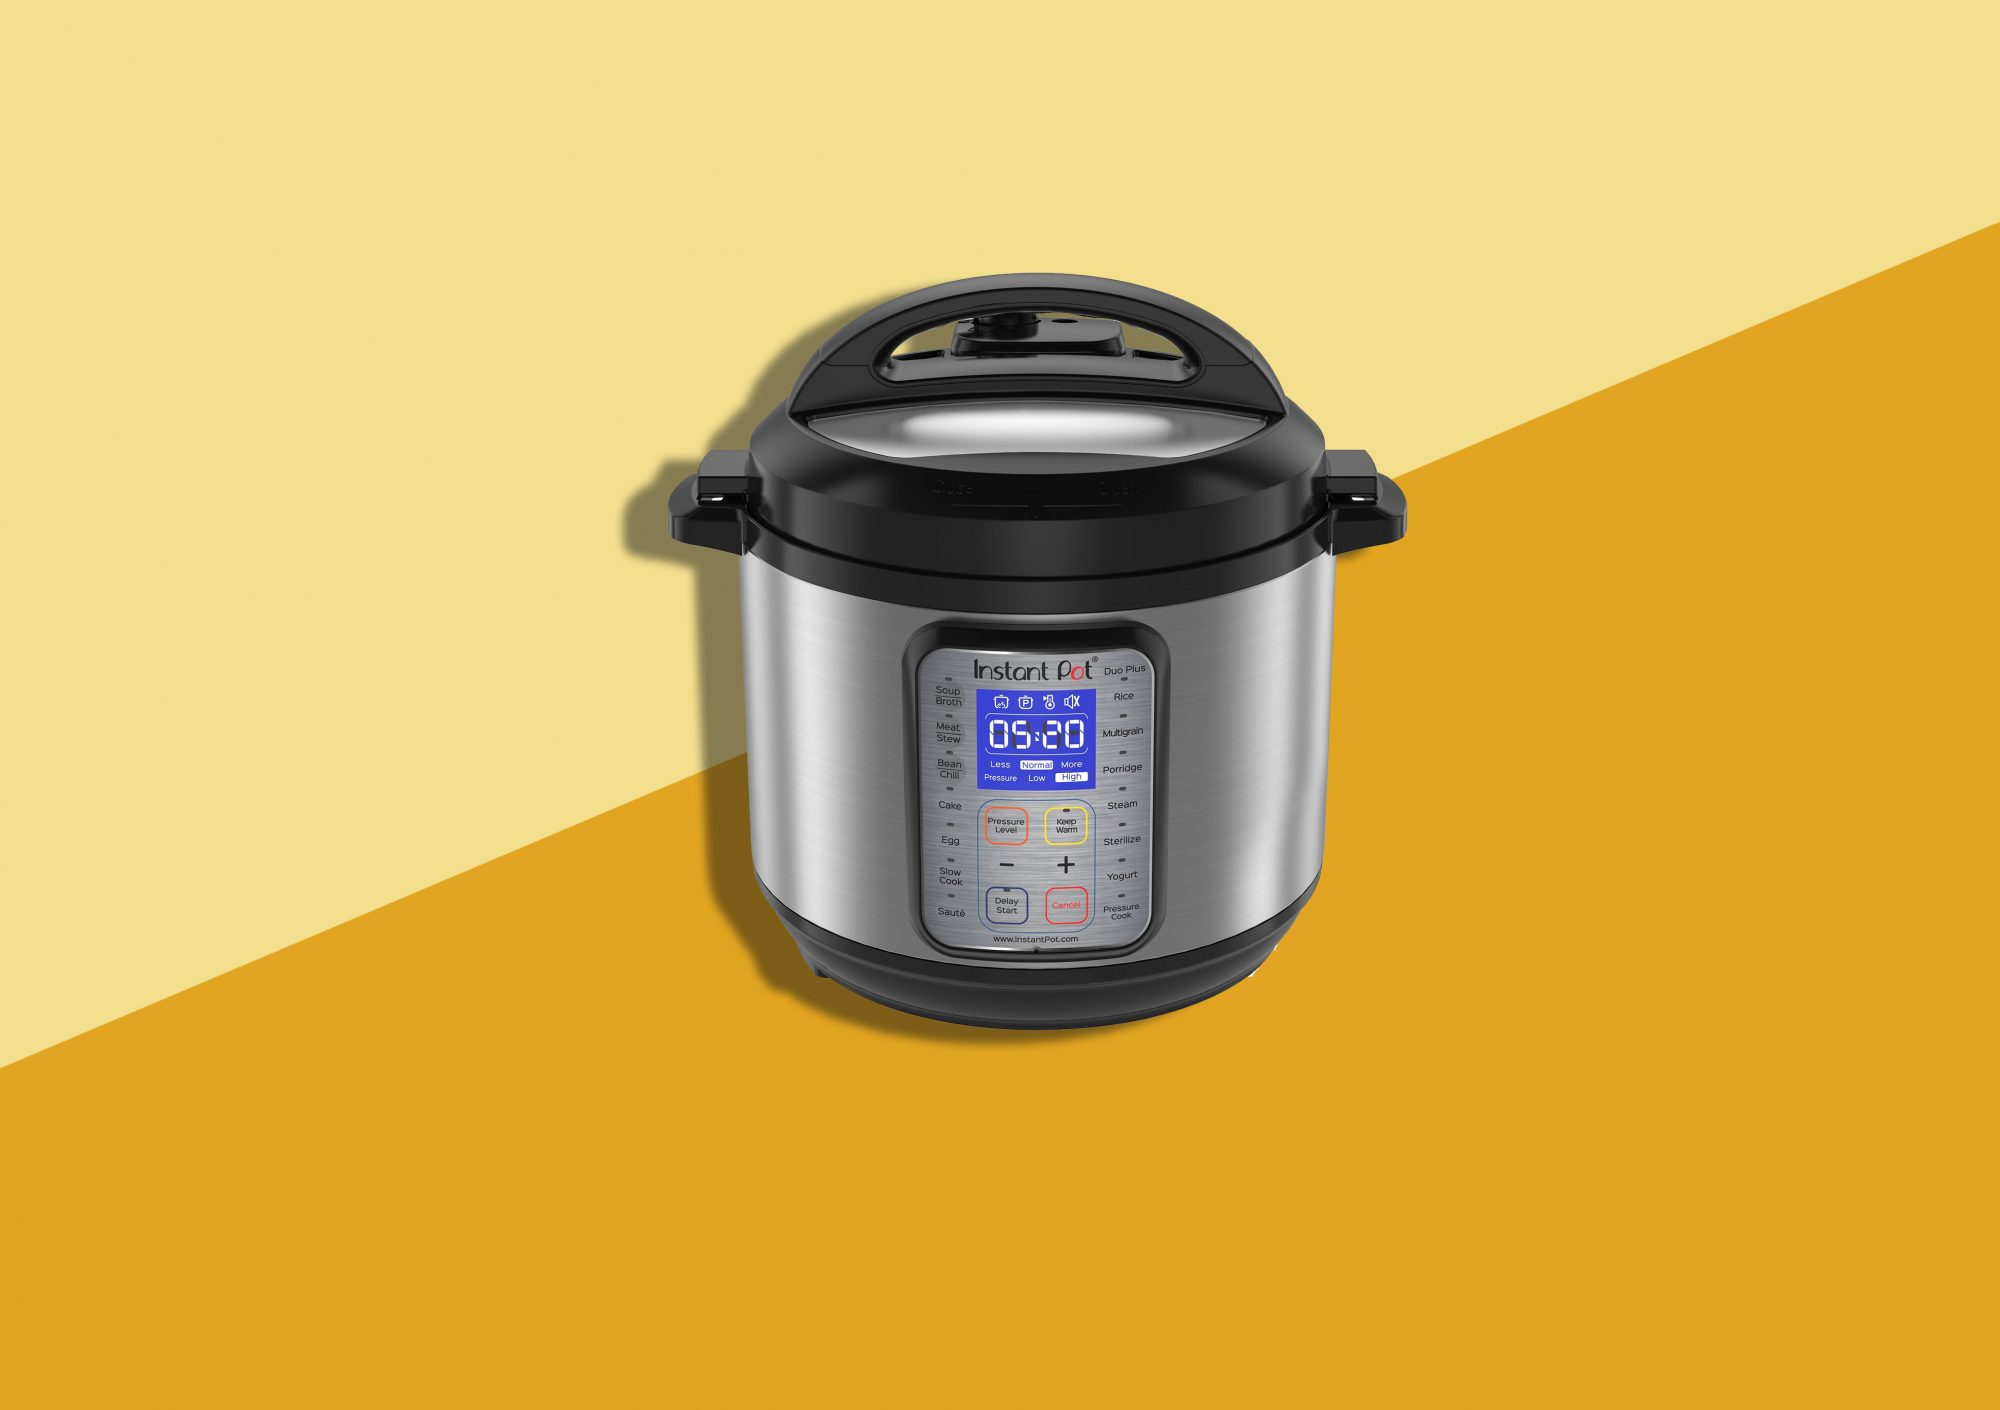 EC: The Best and Worst Things About My Instant Pot